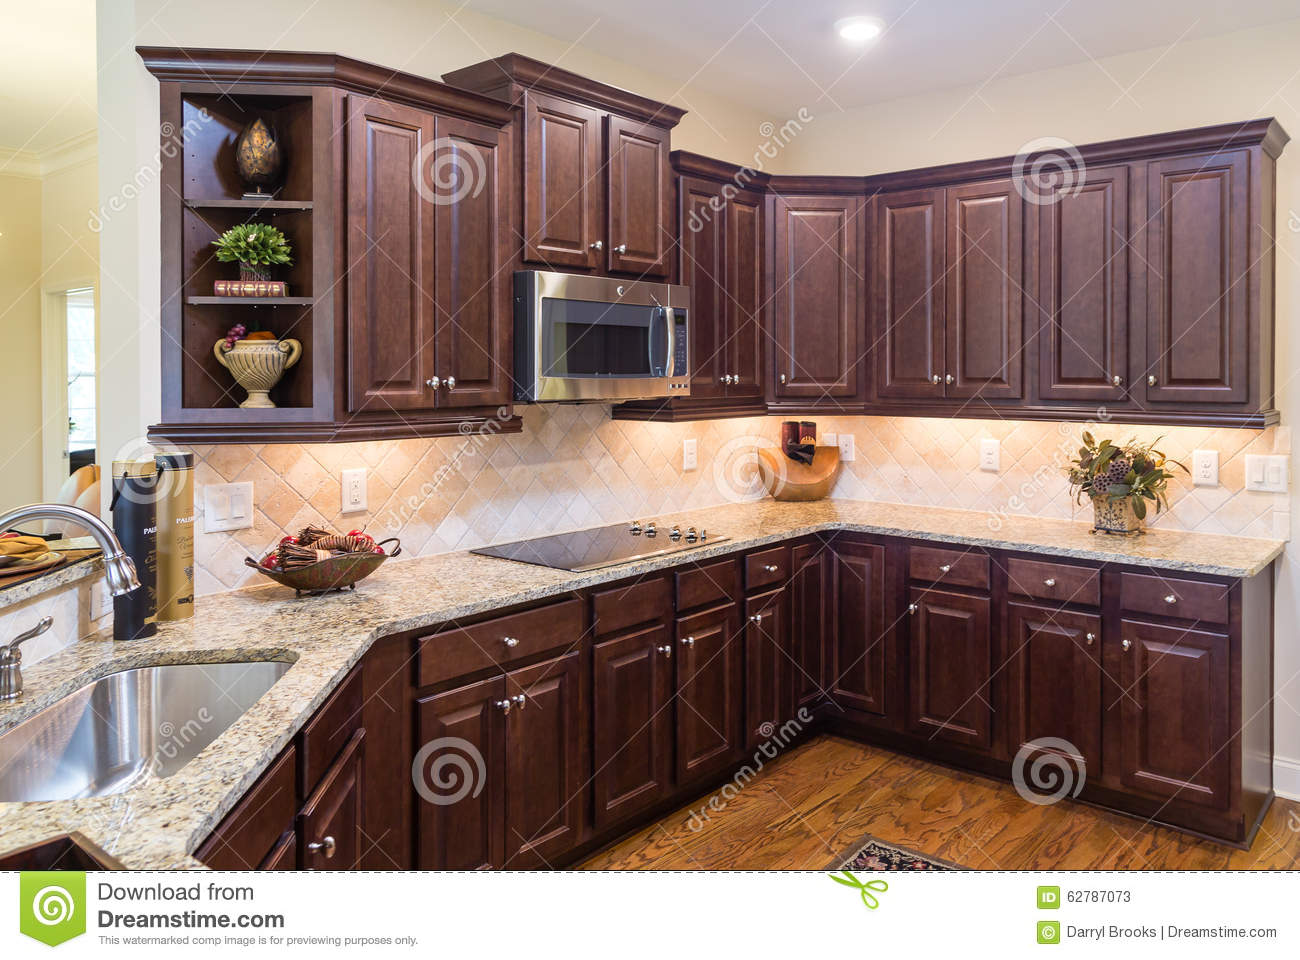 modern kitchen with dark cabinets and wood floor stock image image of house granite 62787073. Black Bedroom Furniture Sets. Home Design Ideas